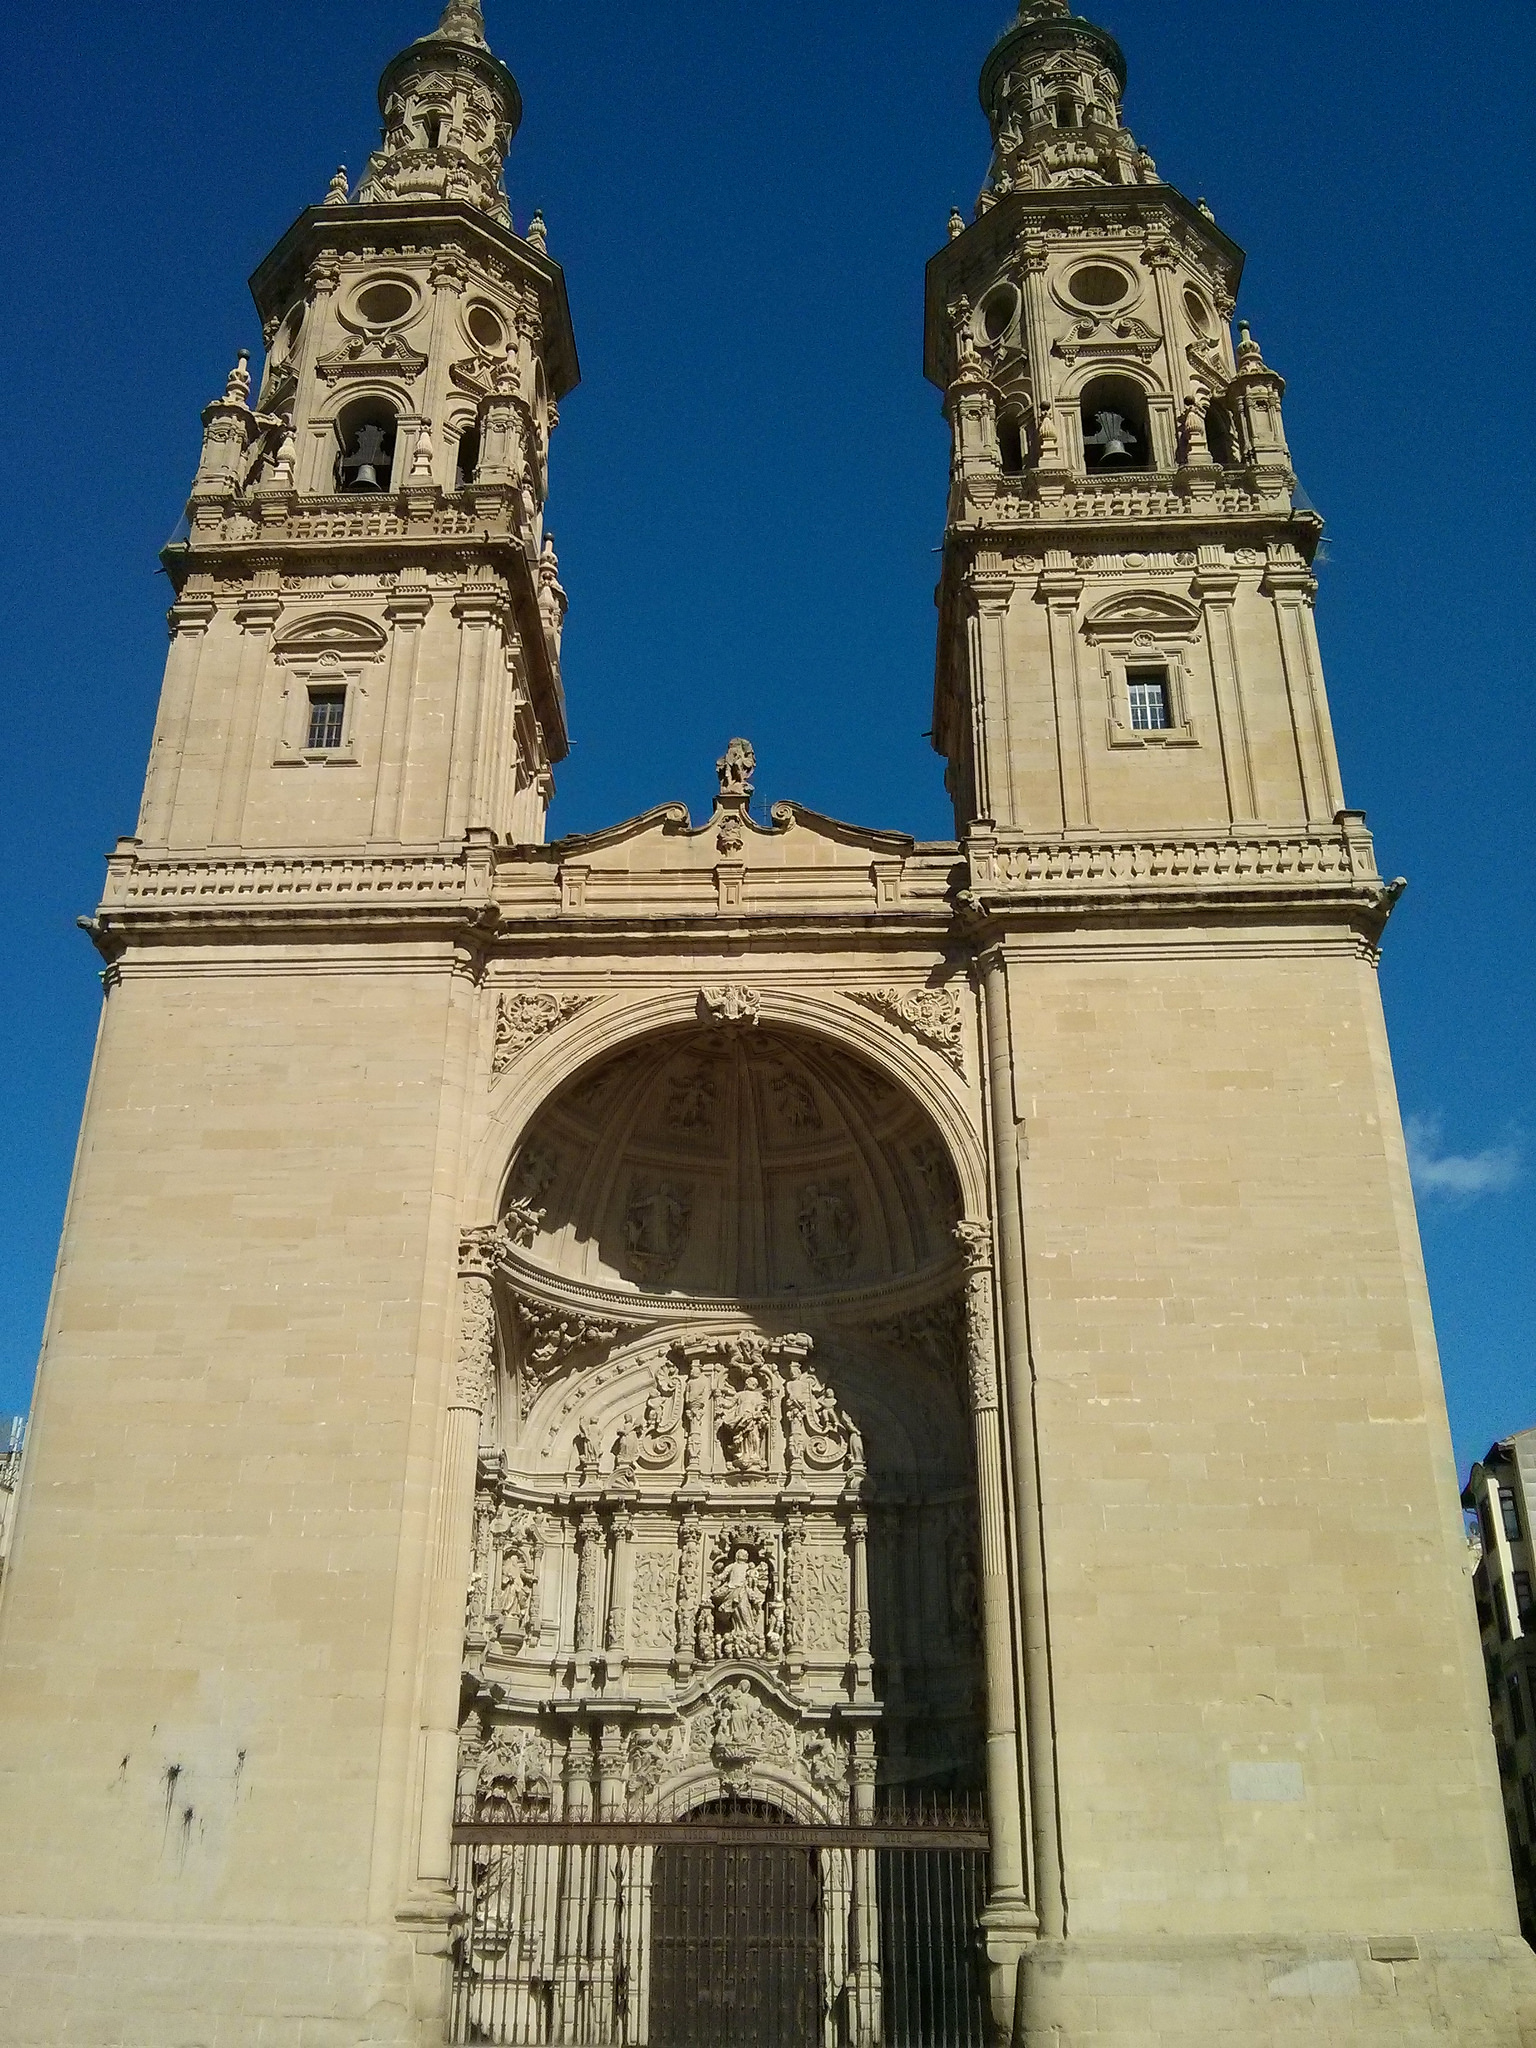 Facade of the Cathedral in Logroño